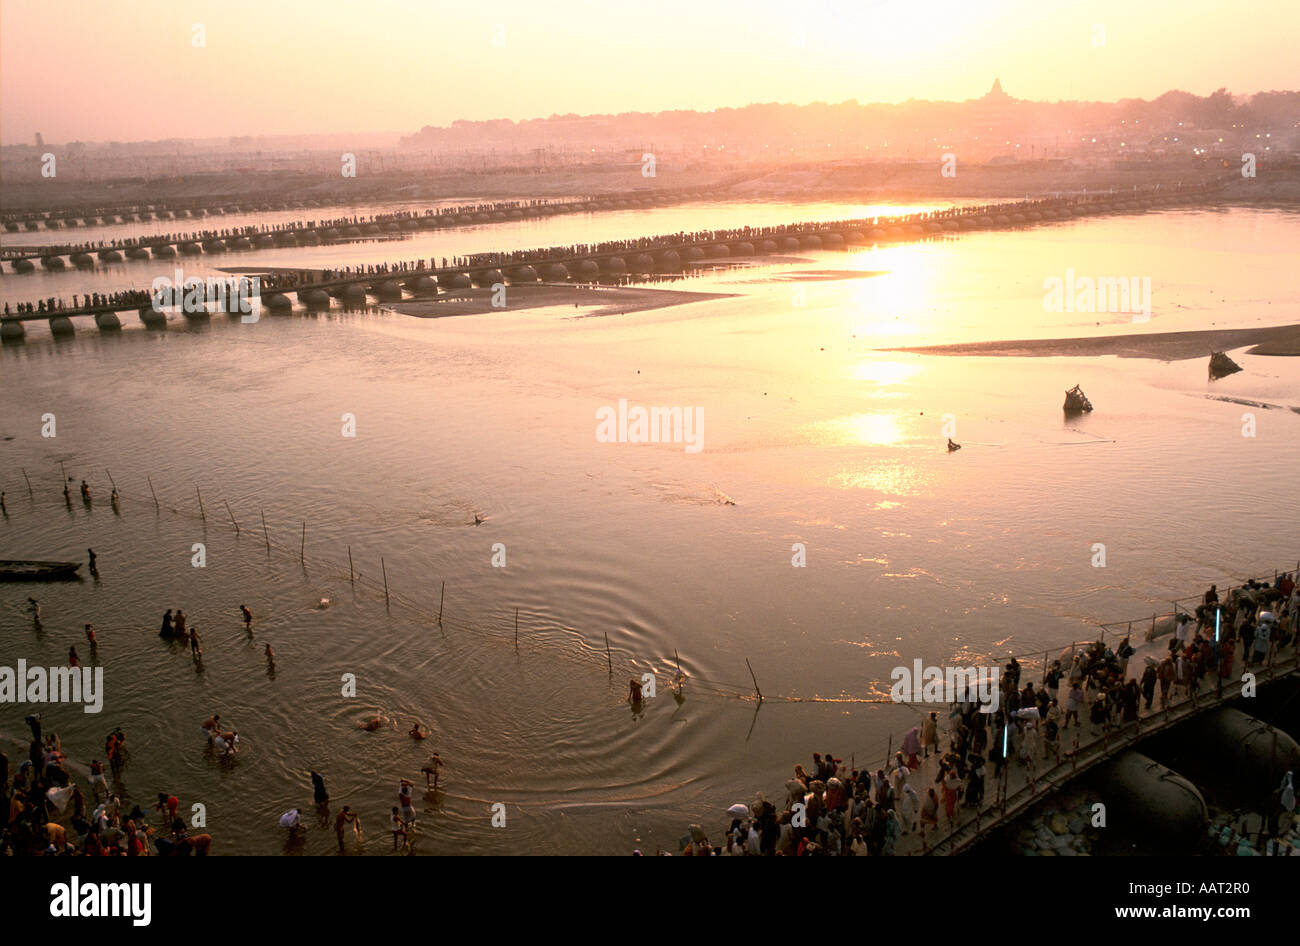 KUMBH MELA INDIA 2001 AS THE SUN SETS OVER ALLAHABAD MANY PILGRIMS BATHE AND PRAY IN THE WATERS OF THE GANGES 2001 Stock Foto